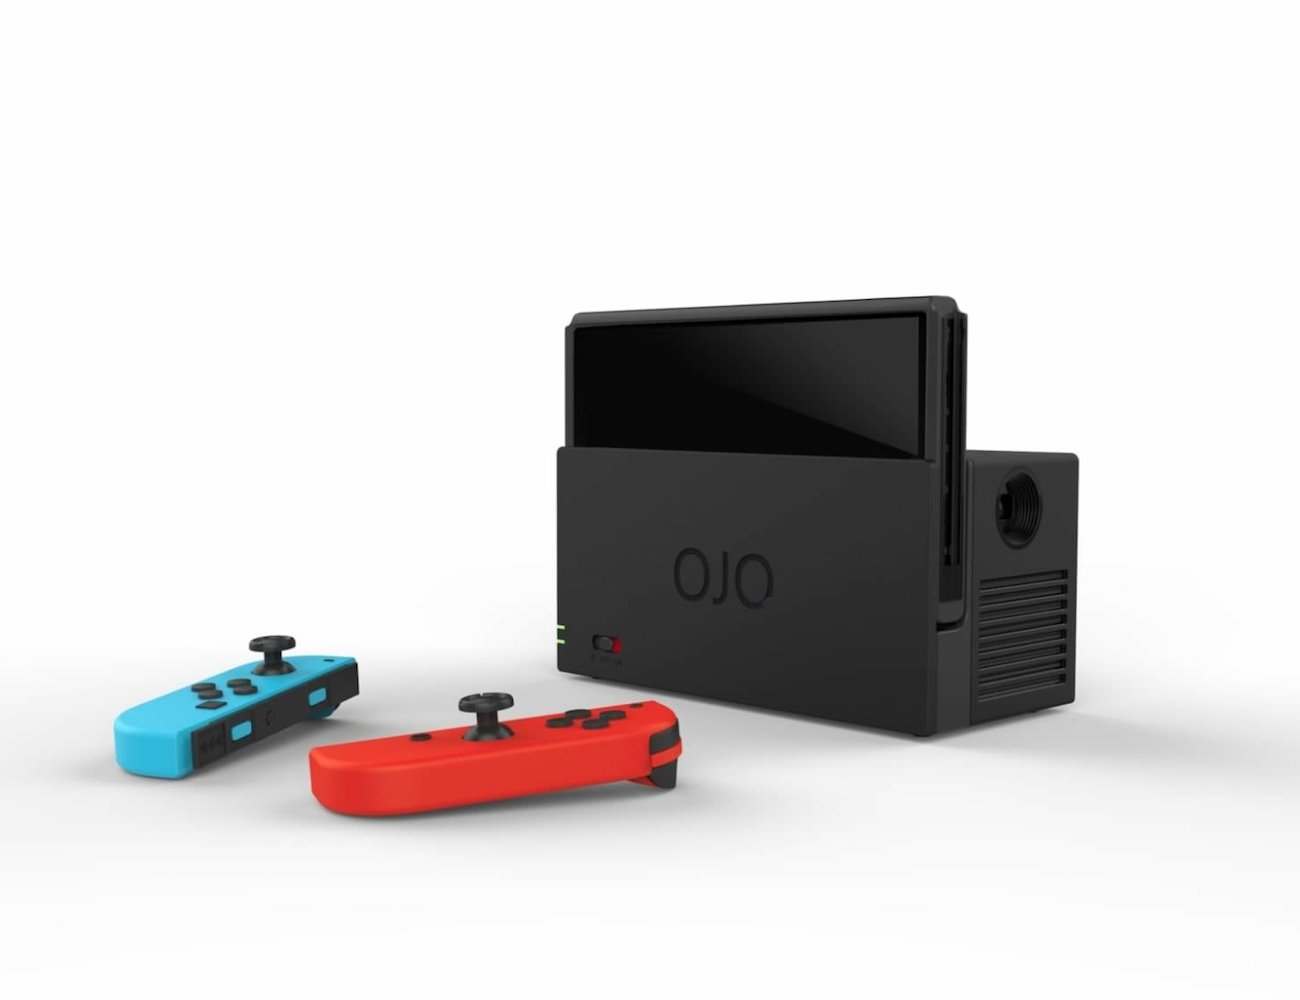 OJO Portable Nintendo Switch Projector